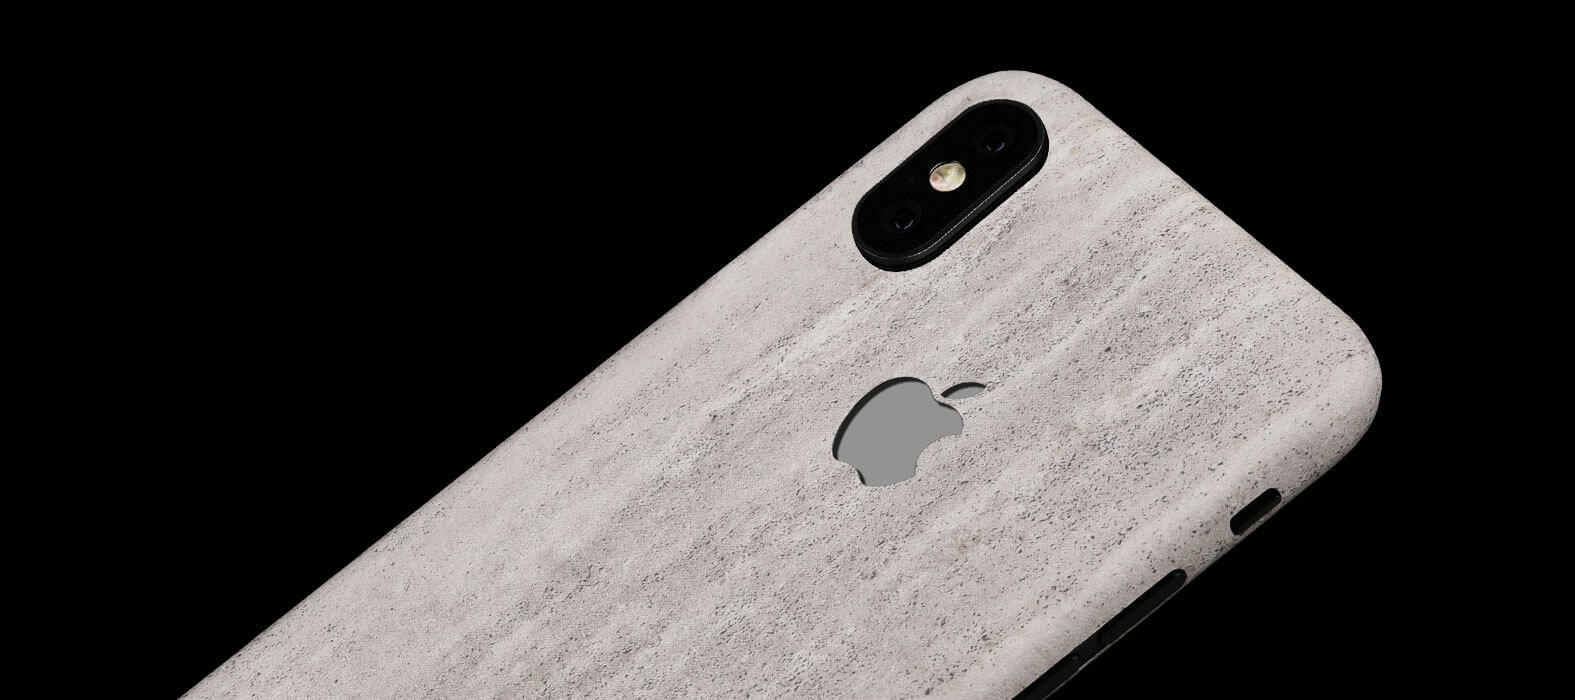 Concrete iPhone X Skins, Wraps & decals